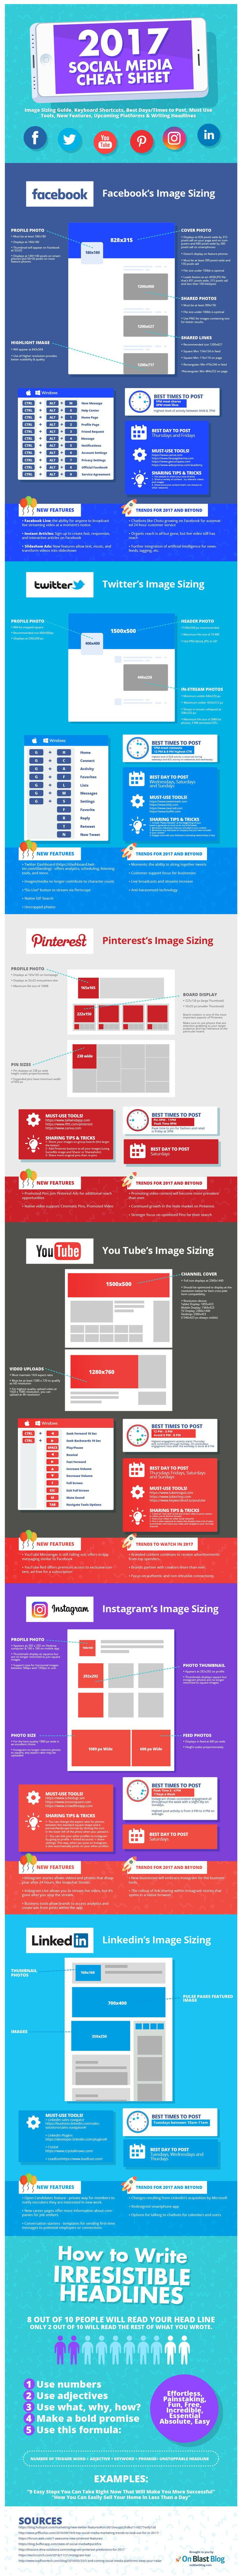 Advertising-Infographics-With-tips-on-image-size-keyboard-shortcuts-and-must-have-tools-writing-irresi Advertising Infographics : With tips on image size, keyboard shortcuts, and must-have tools; writing irresi...